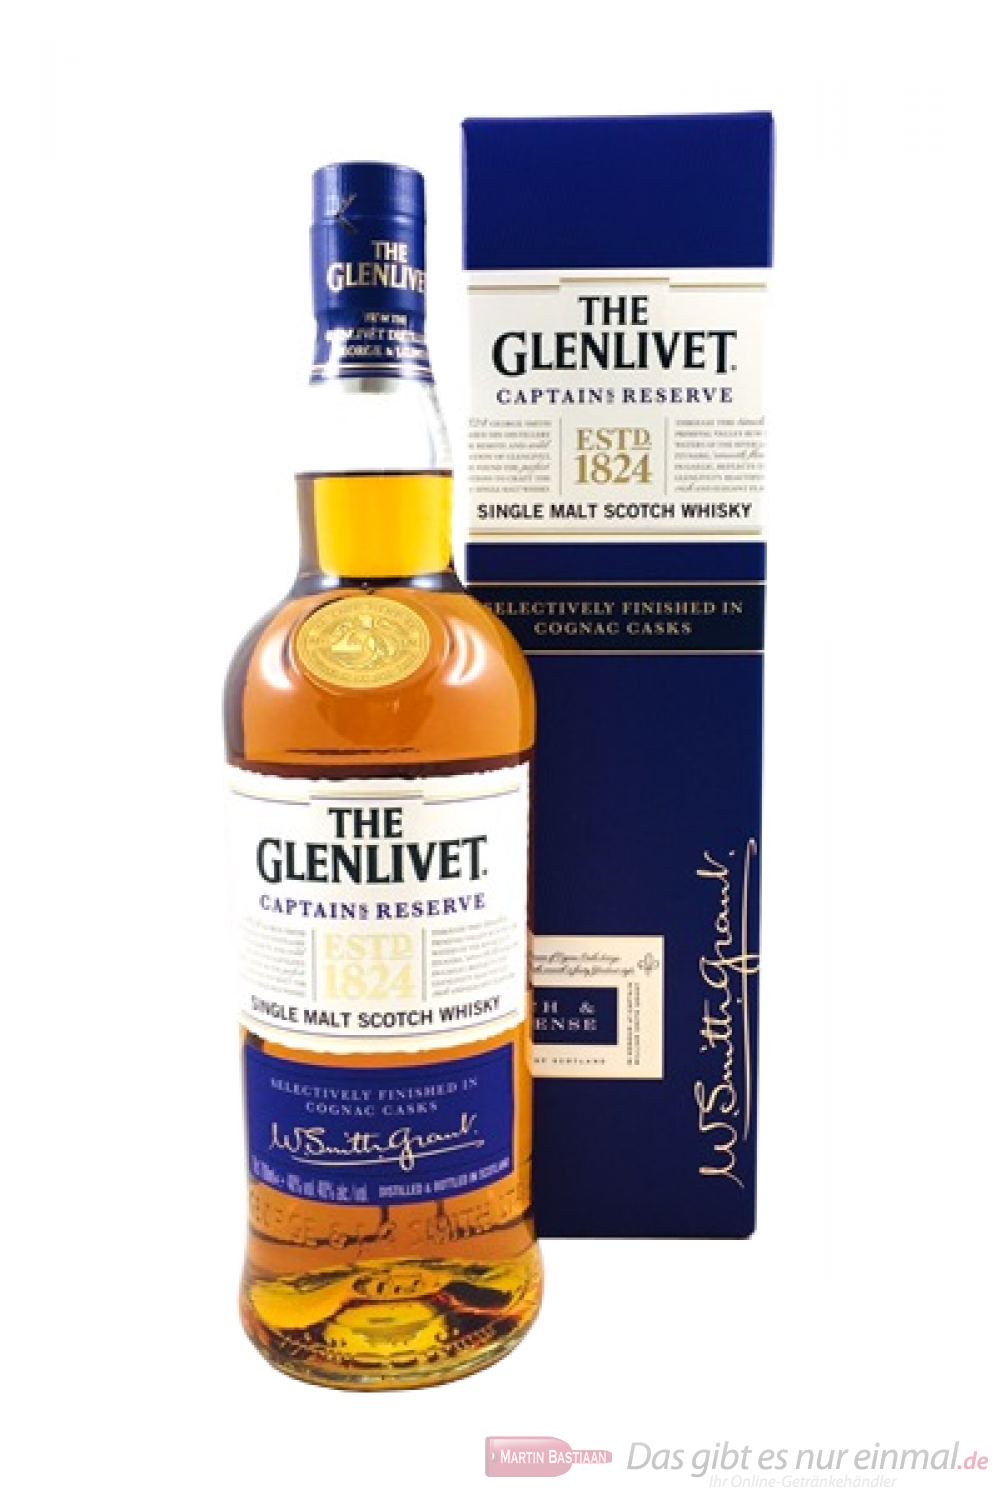 The Glenlivet Captains Reserve